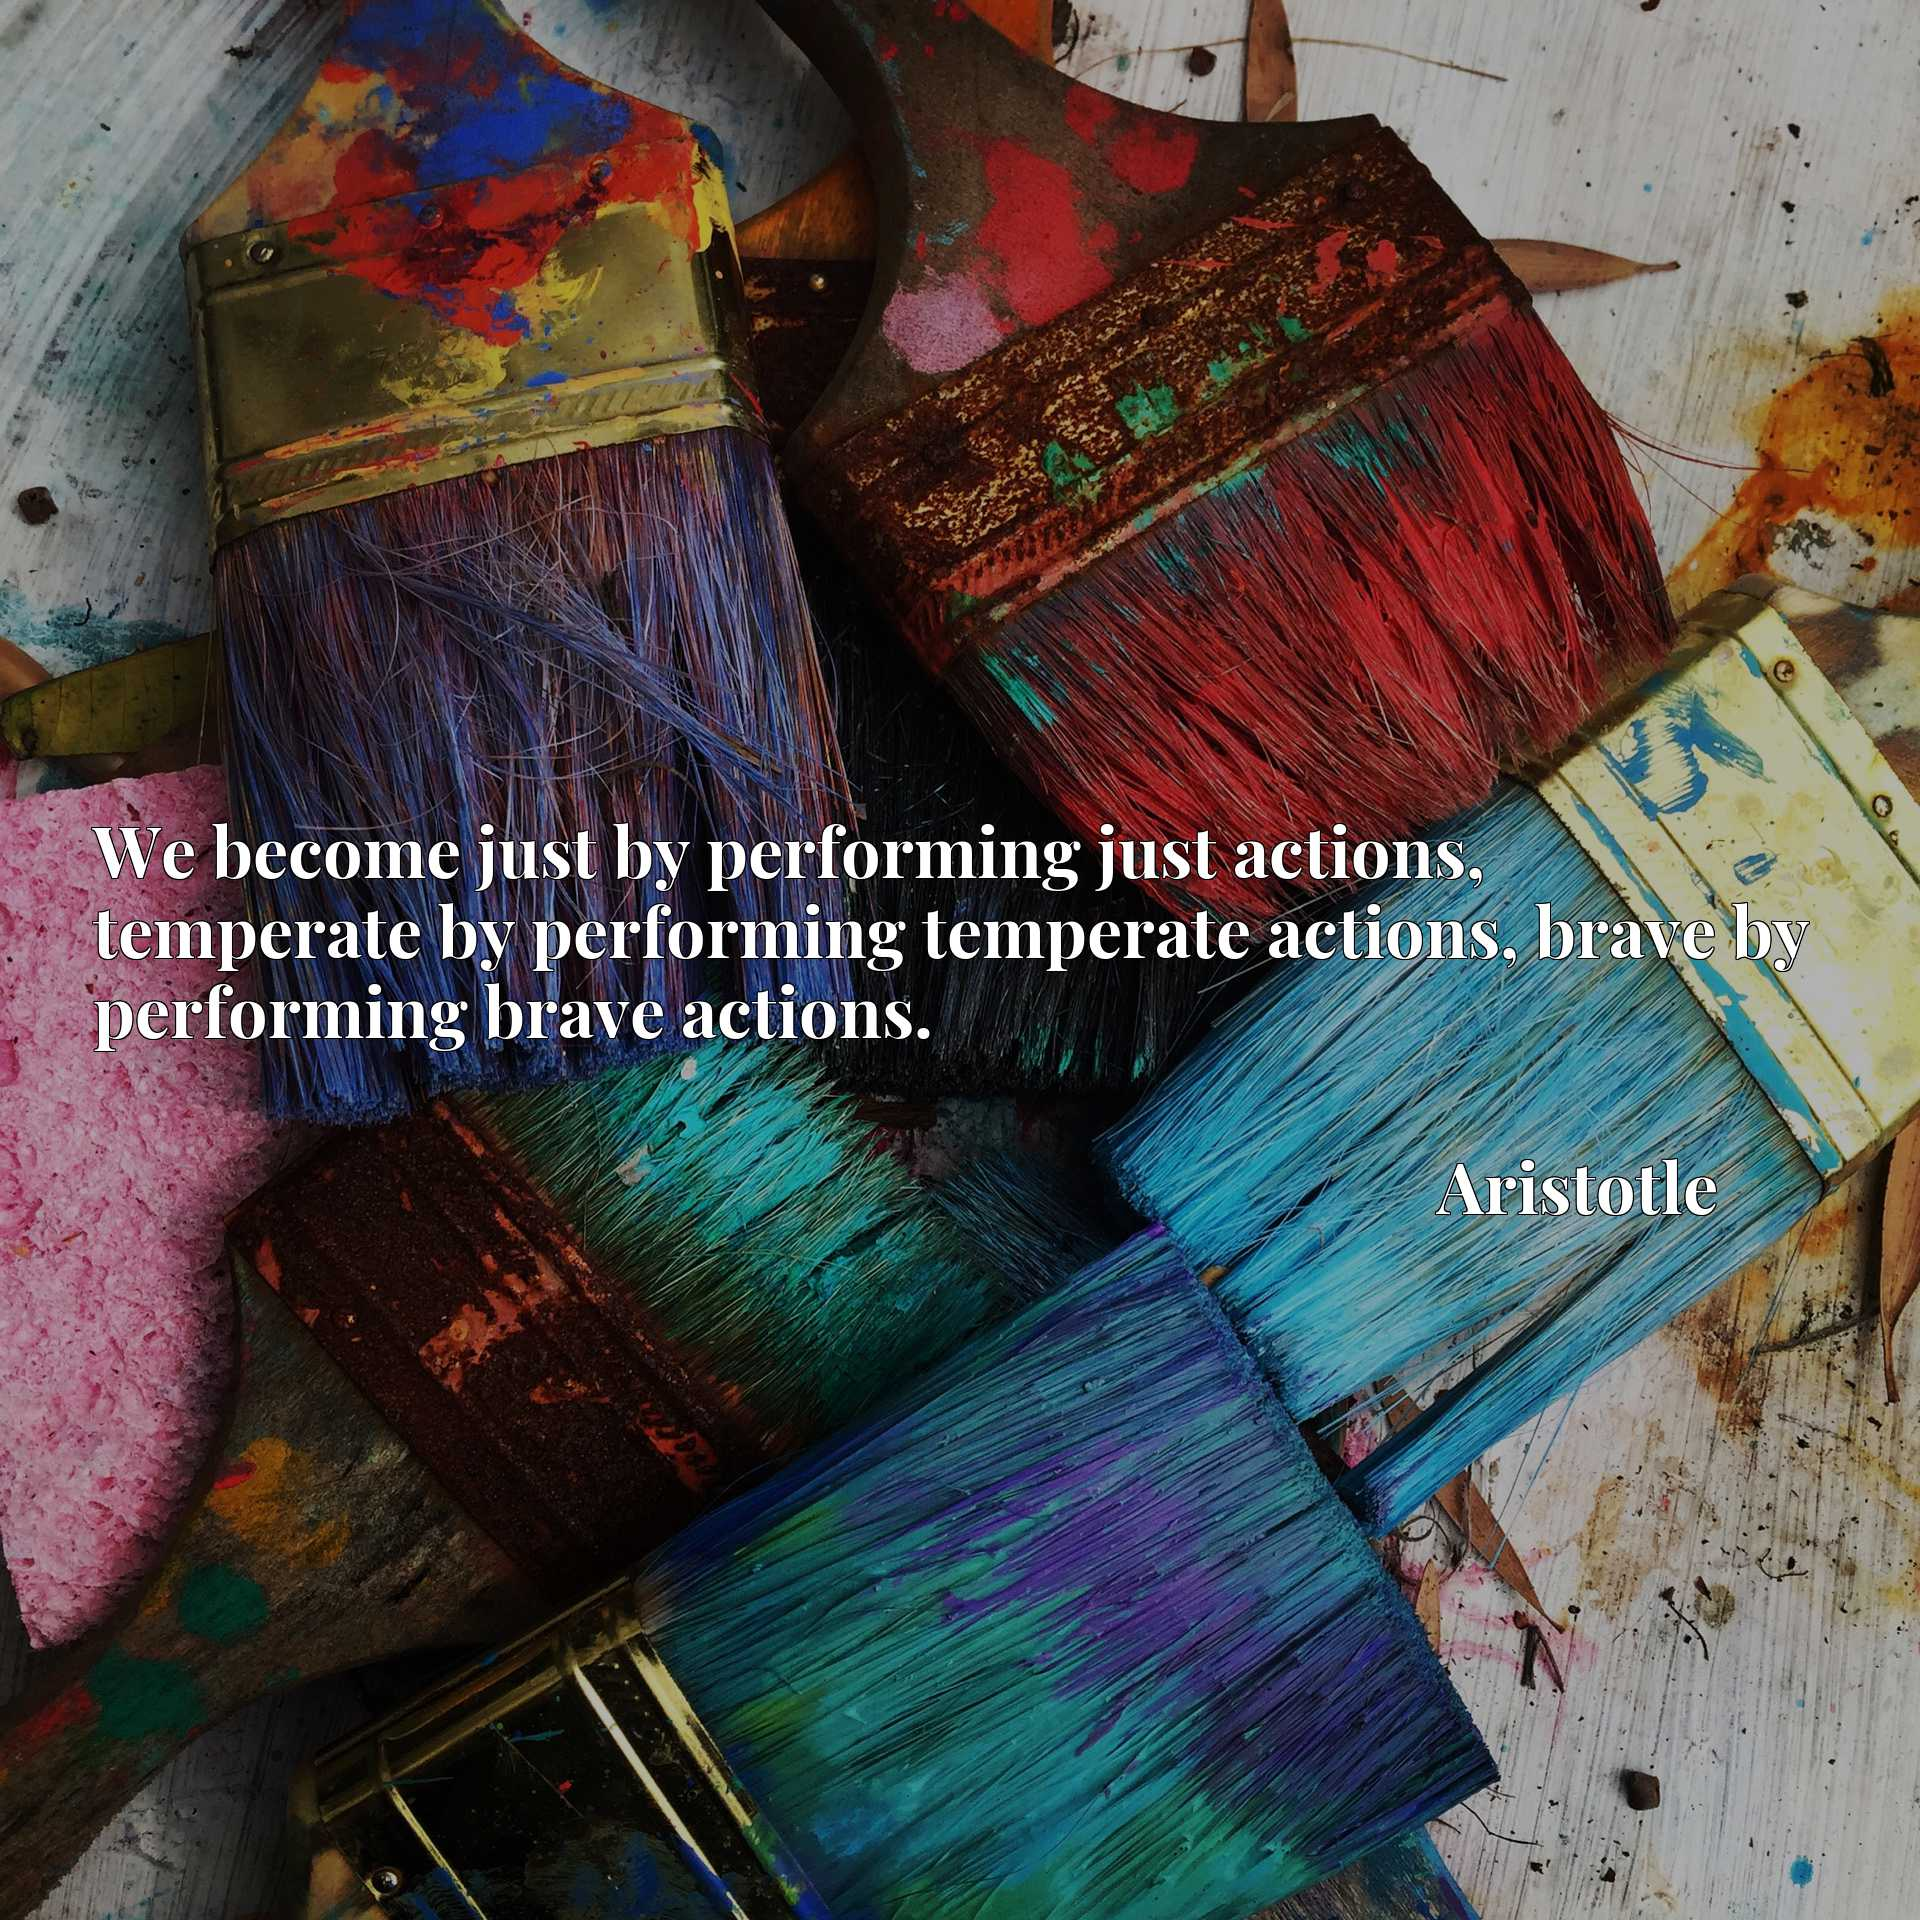 We become just by performing just actions, temperate by performing temperate actions, brave by performing brave actions.